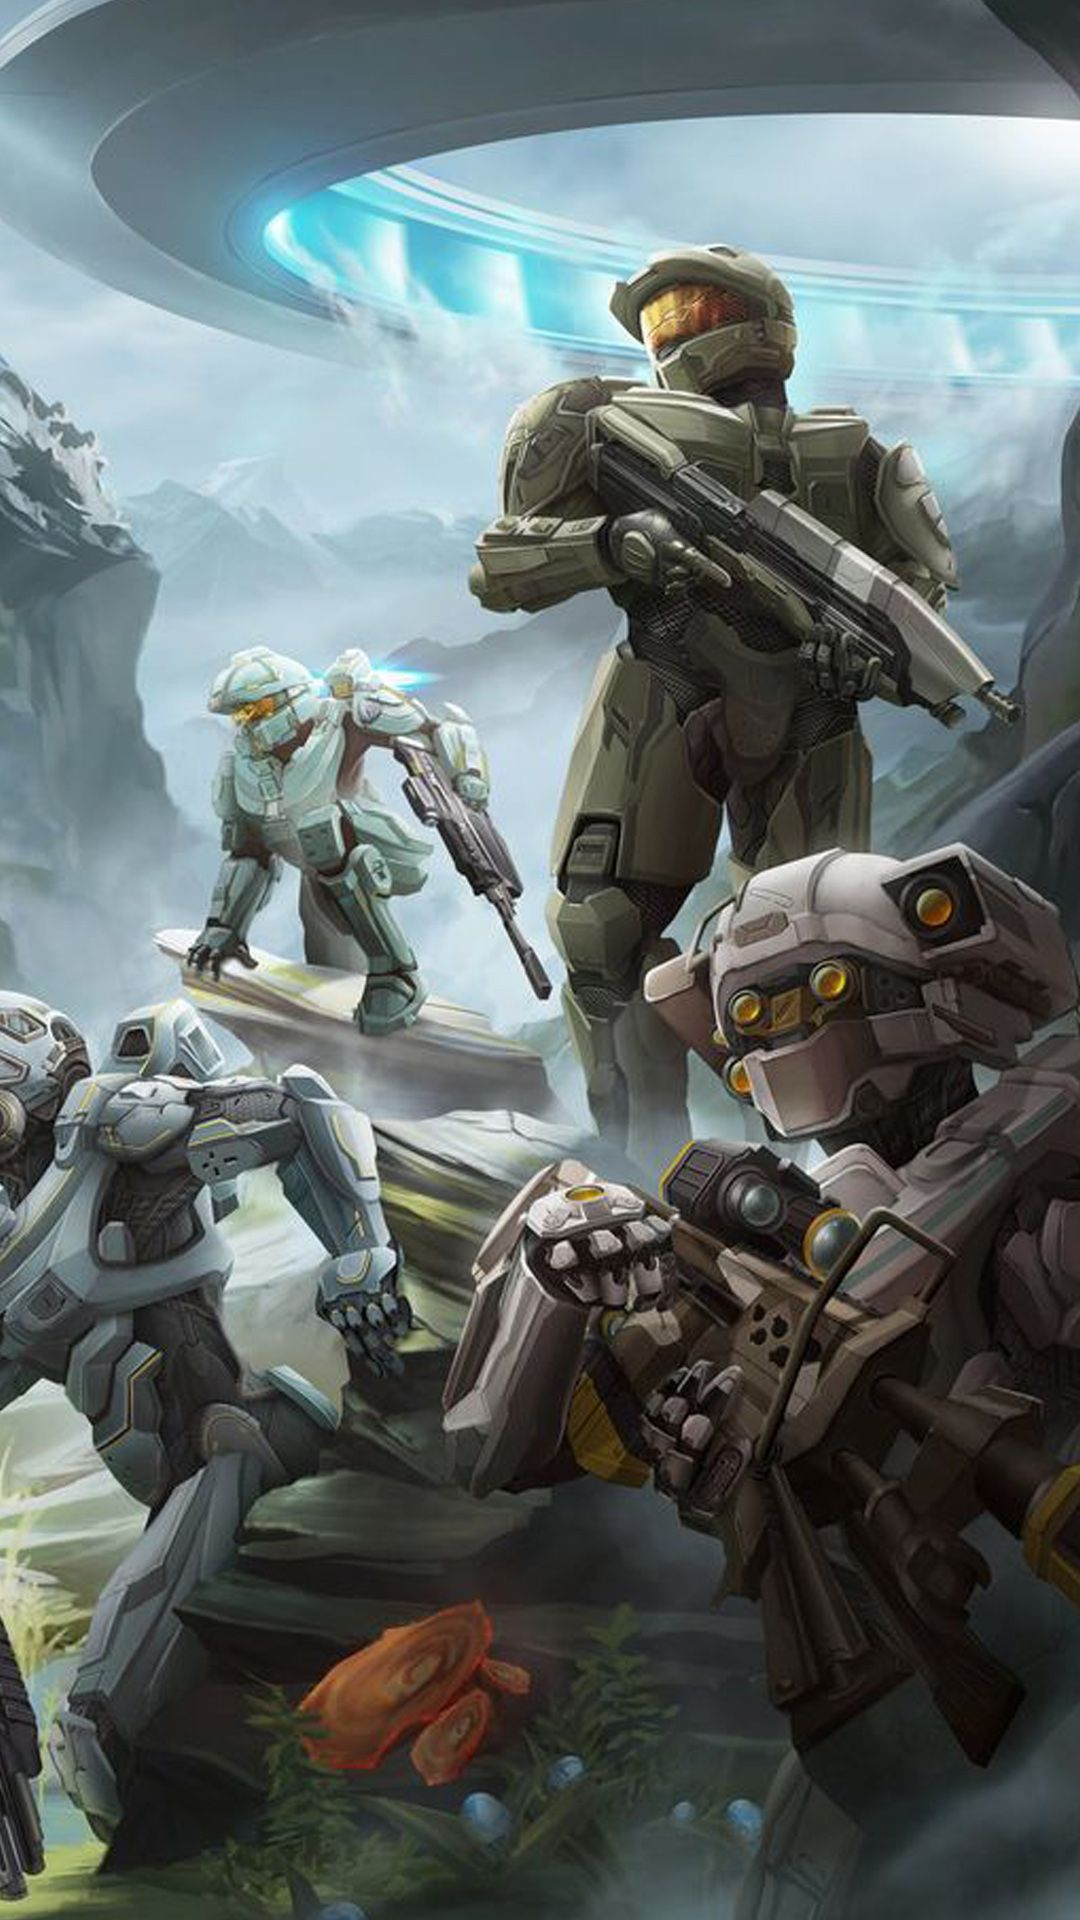 Wallpaper iphone 6 xbox - Wallpaper Halo Wars Xbox One Atriox Best Games Games